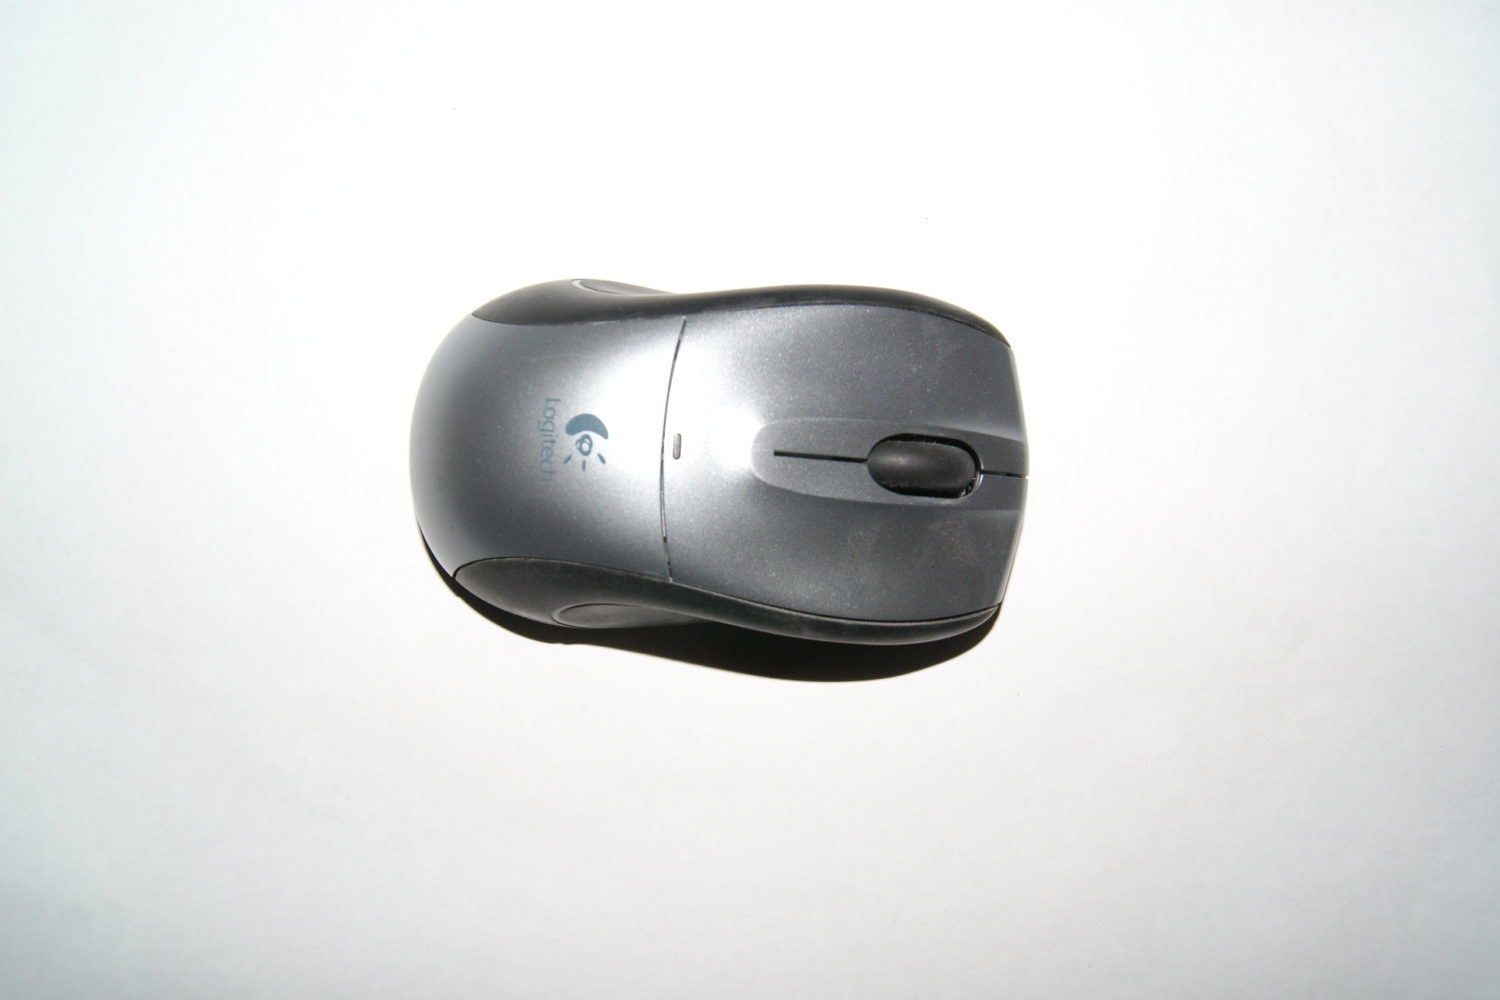 logitech M505 wireless mouse (No unifying reciever)